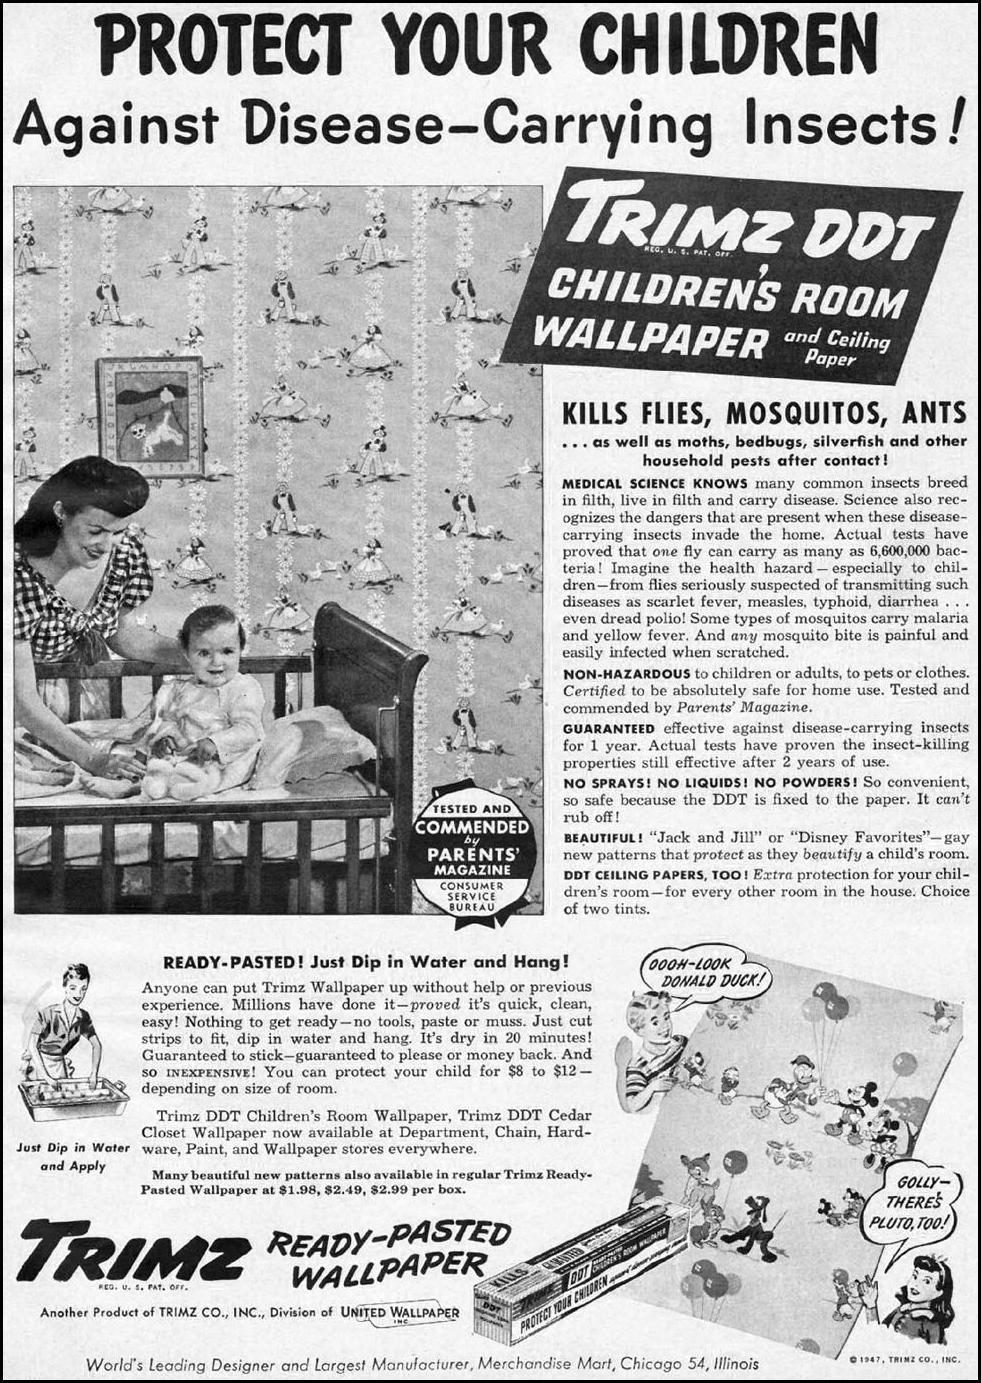 TRIMZ DDT WALLPAPER WOMAN'S DAY 06/01/1947 p. 69